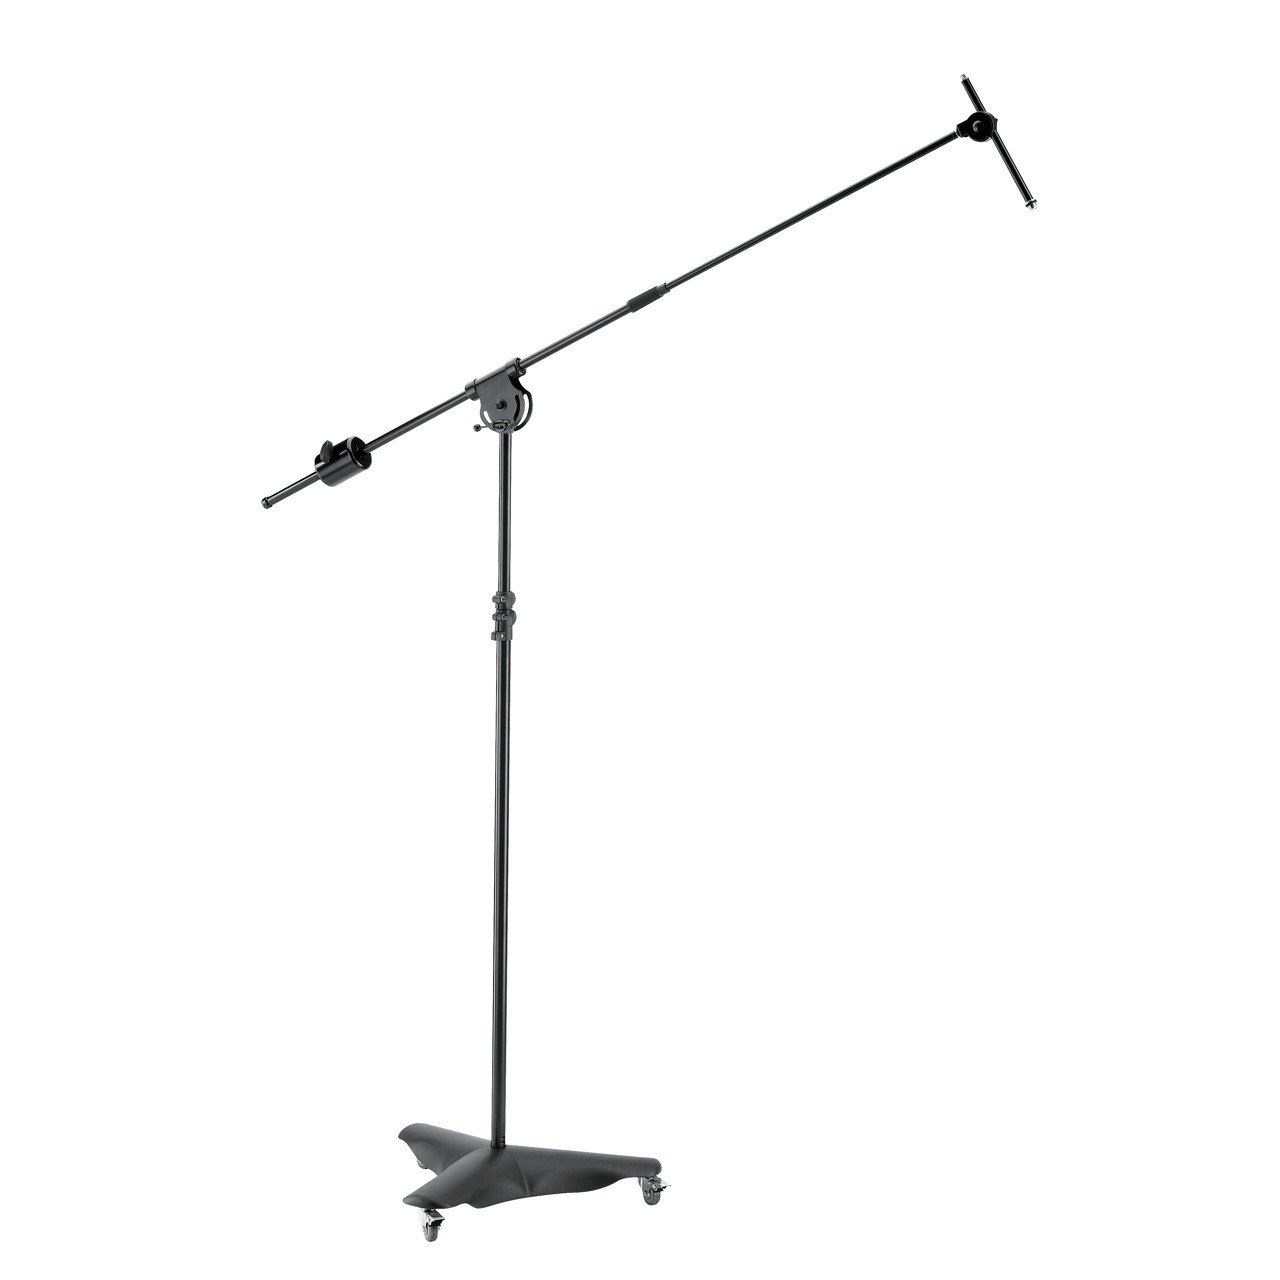 Microphone Accessories - Konig & Meyer 21430 Overhead Microphone Stand Black